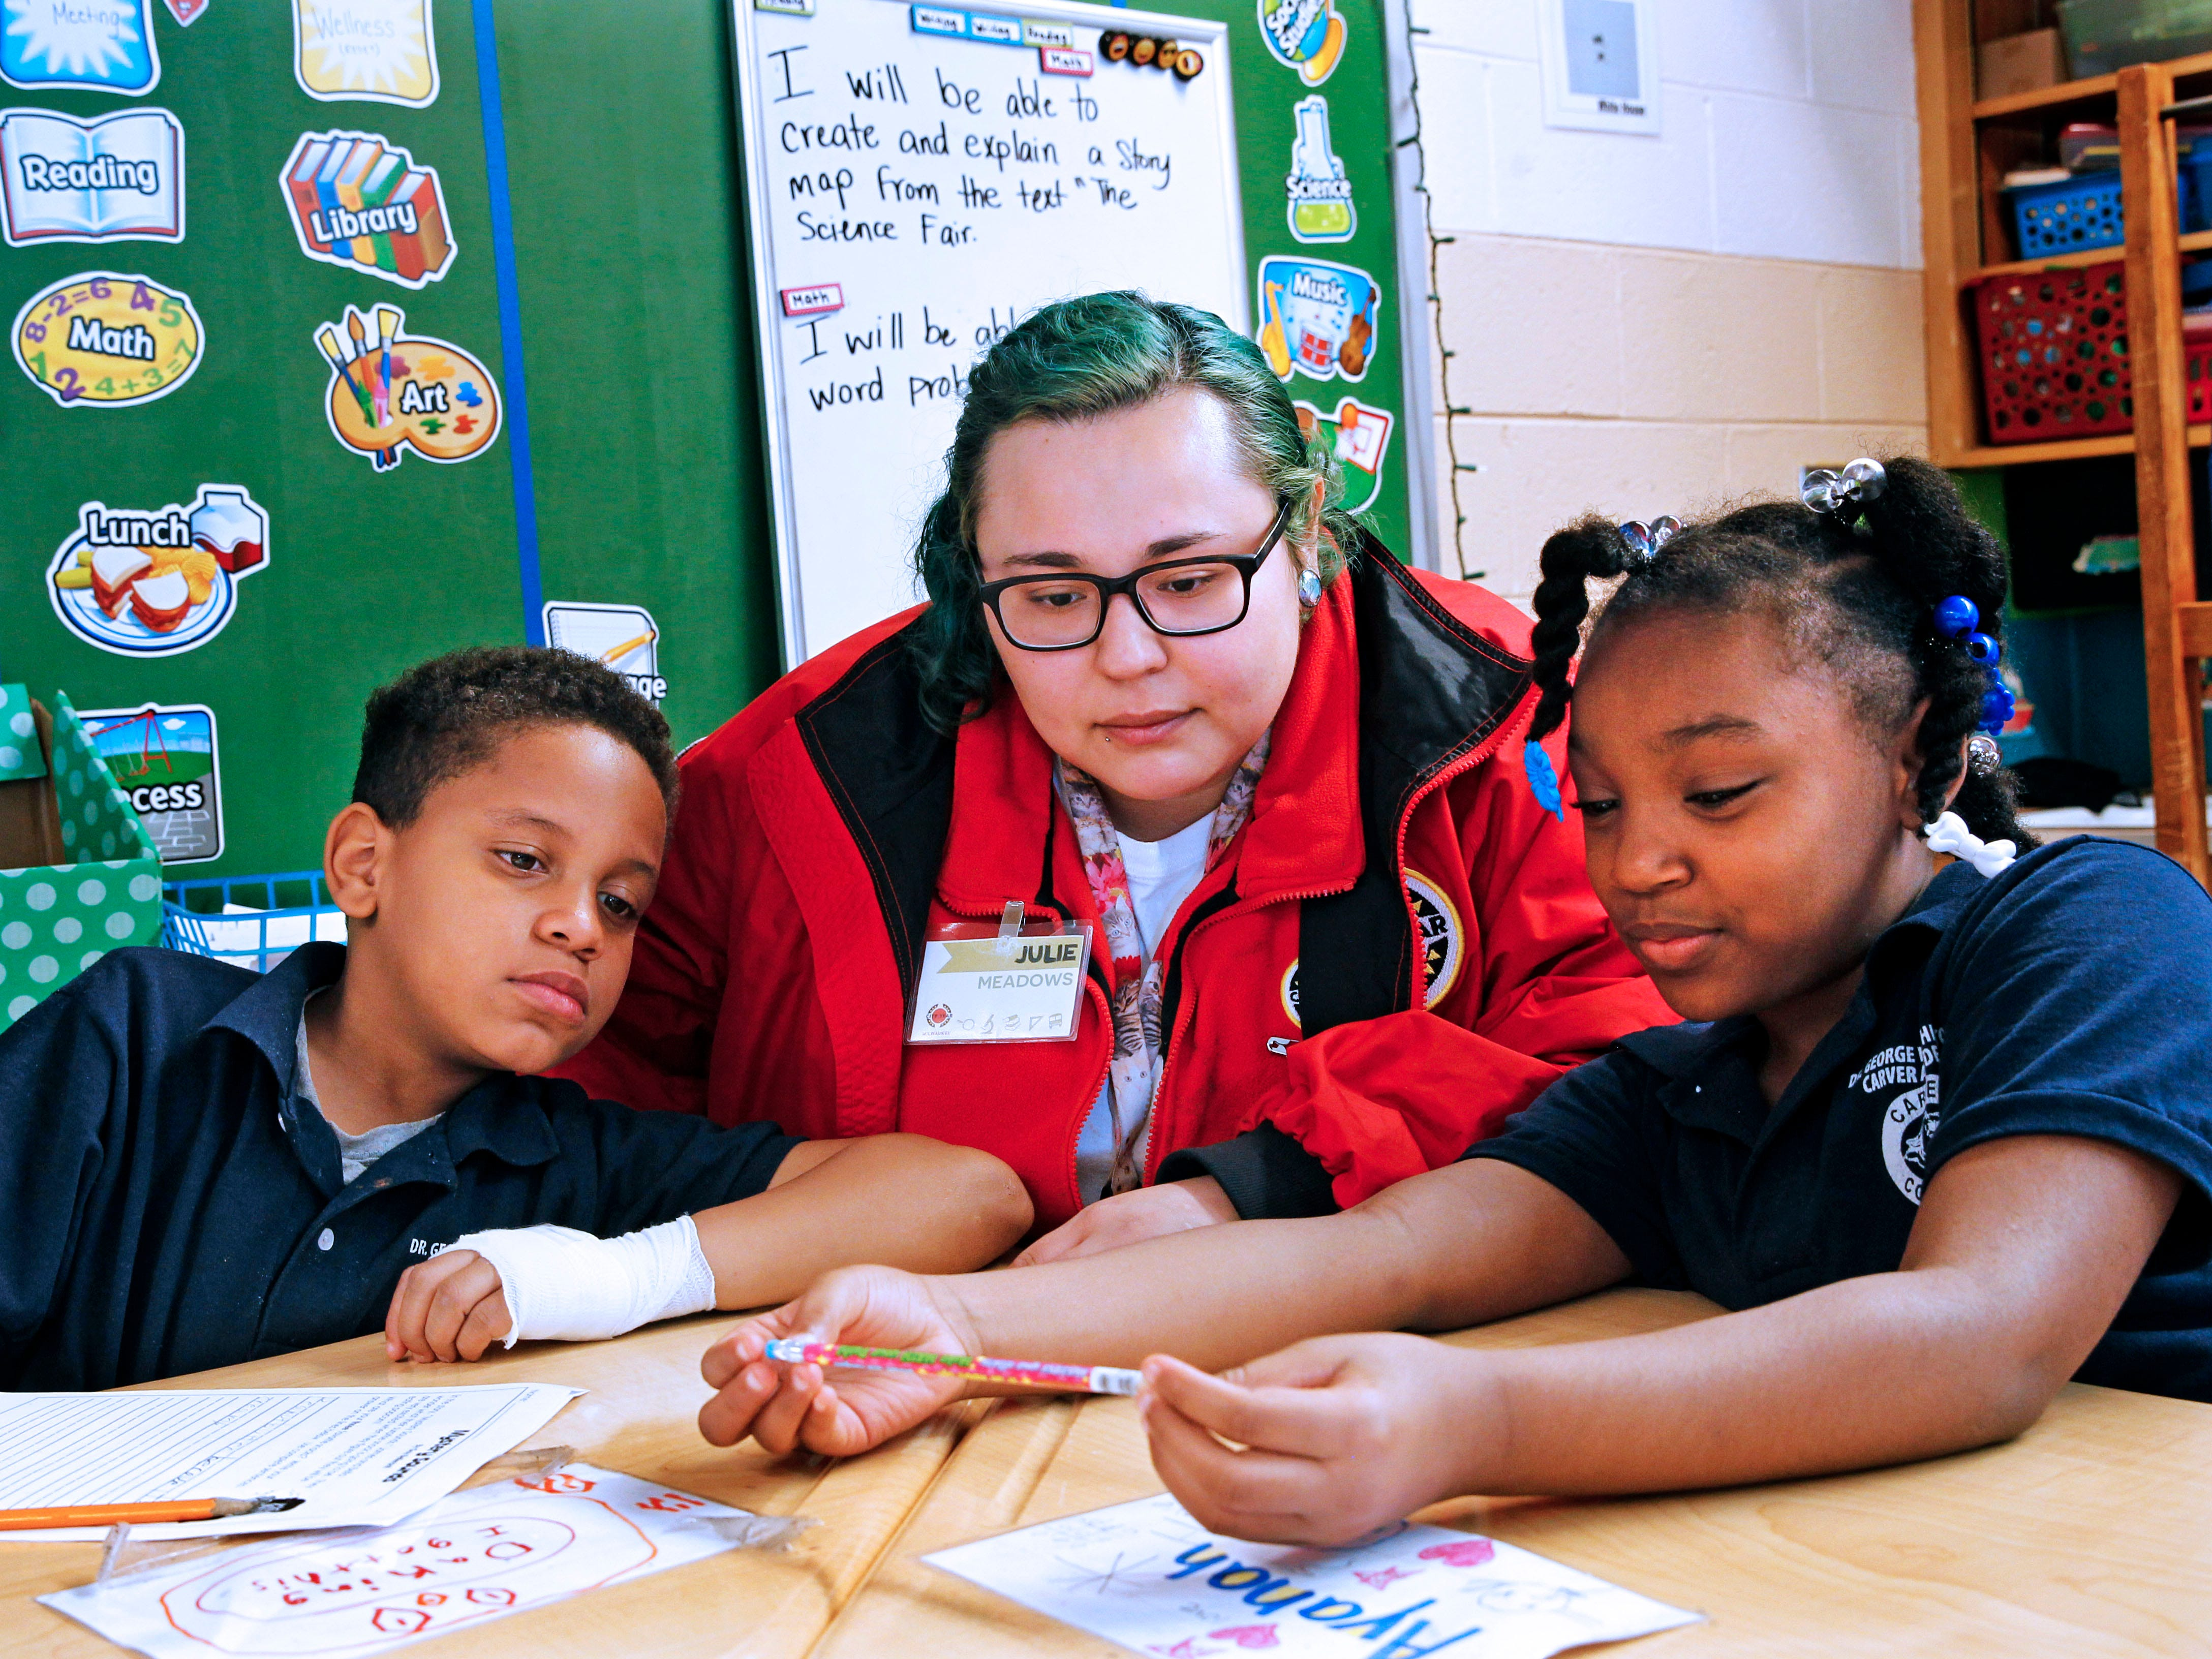 City Year Americorp staffer Julie Meadow (center) works with Daking (cq) Bogan-Clark, 9, (left) and Ayanah (cq) Harvey, 8, at Carver Academy.